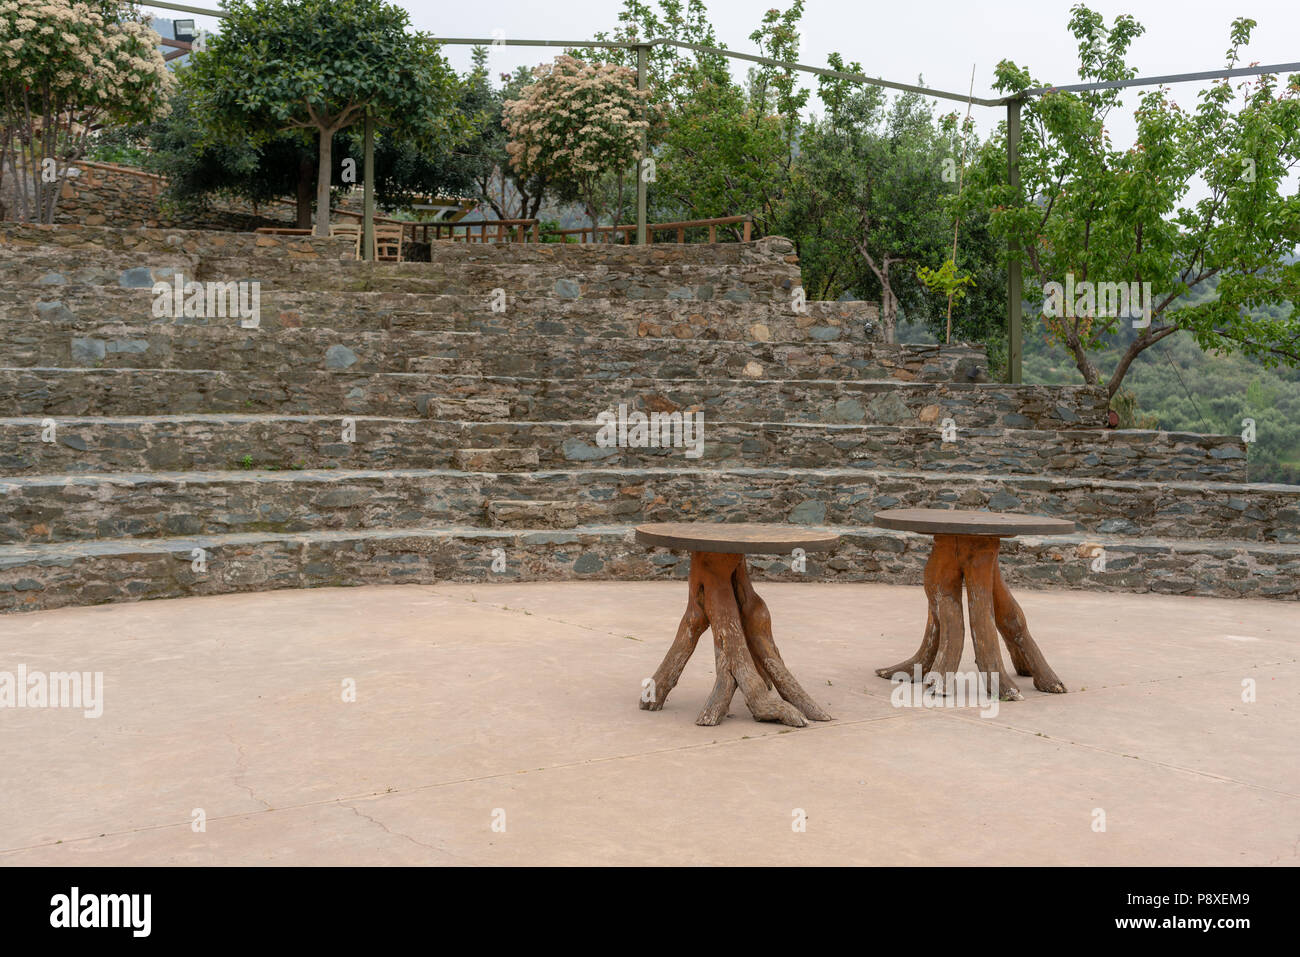 Theater and vine root tables at Botanical garden of Crete, Chania - Stock Image